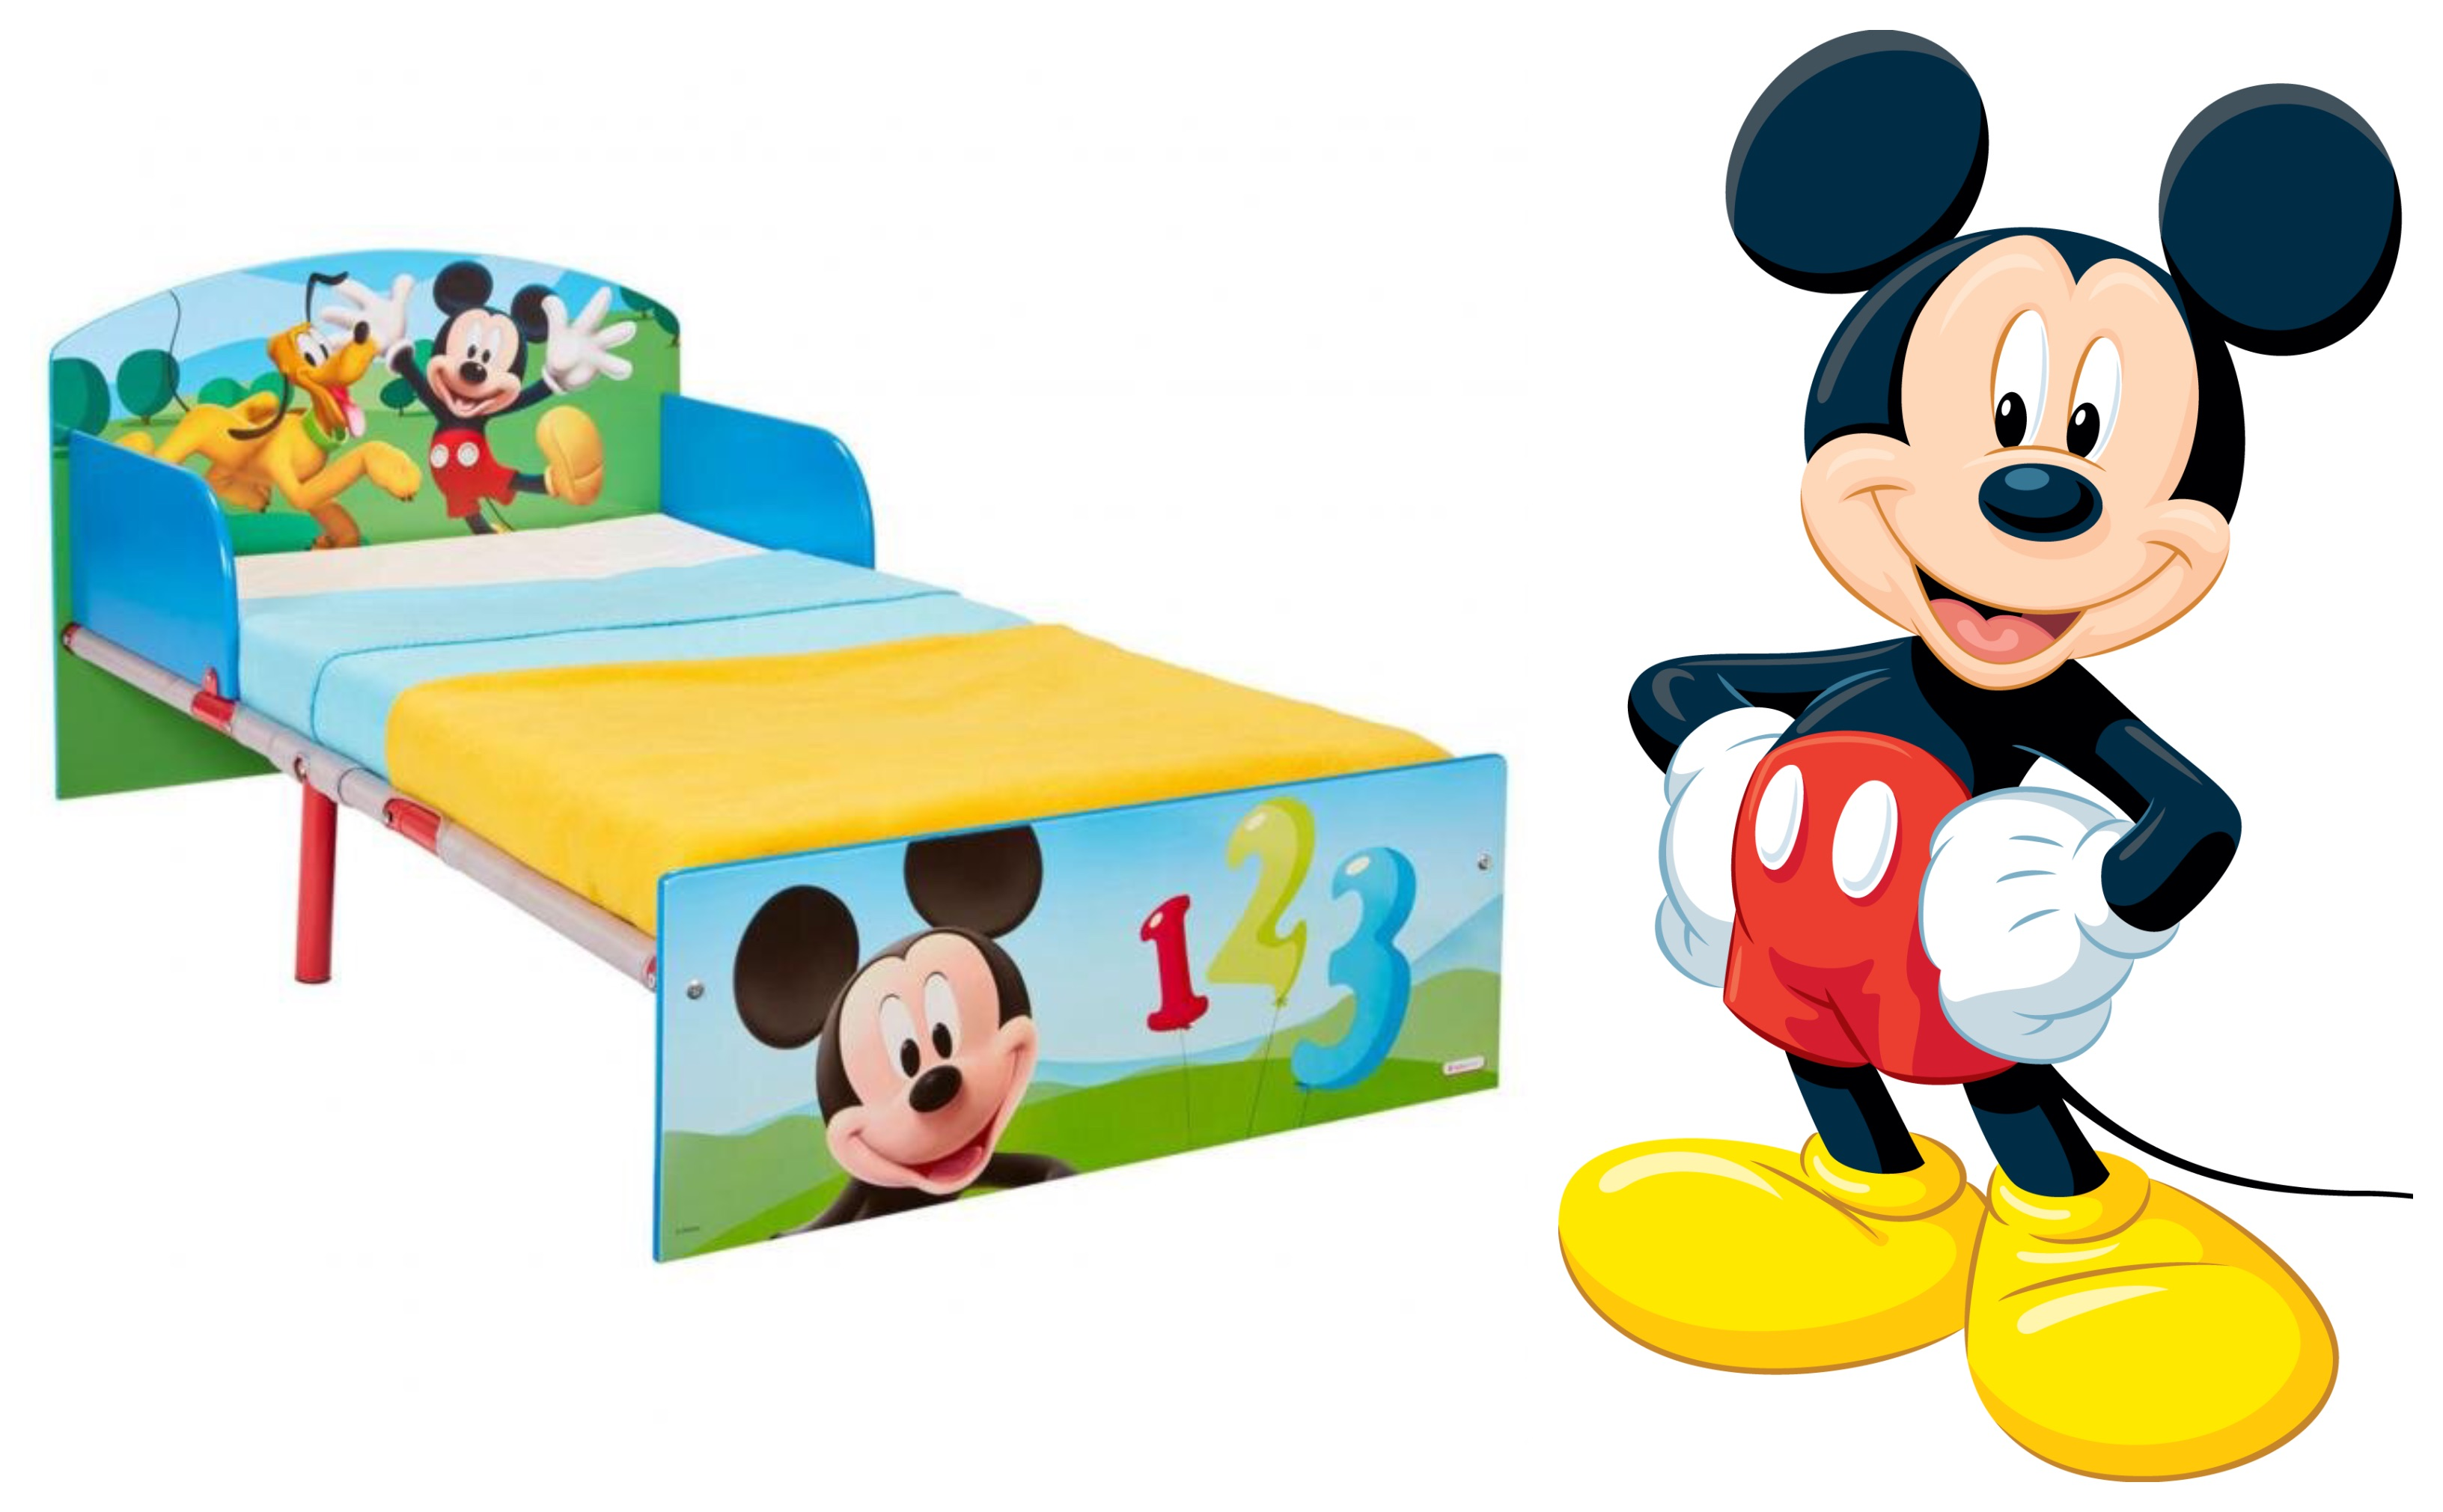 Mickey mouse juniorseng, mickey mouse børneseng, mickey mouse seng til børn, seng med mickey mouse motiv, disney juniorseng, disney børneseng, mickey mouse gaver, mickey mouse møbler til børneværelset, mickey mouse børnemøbler